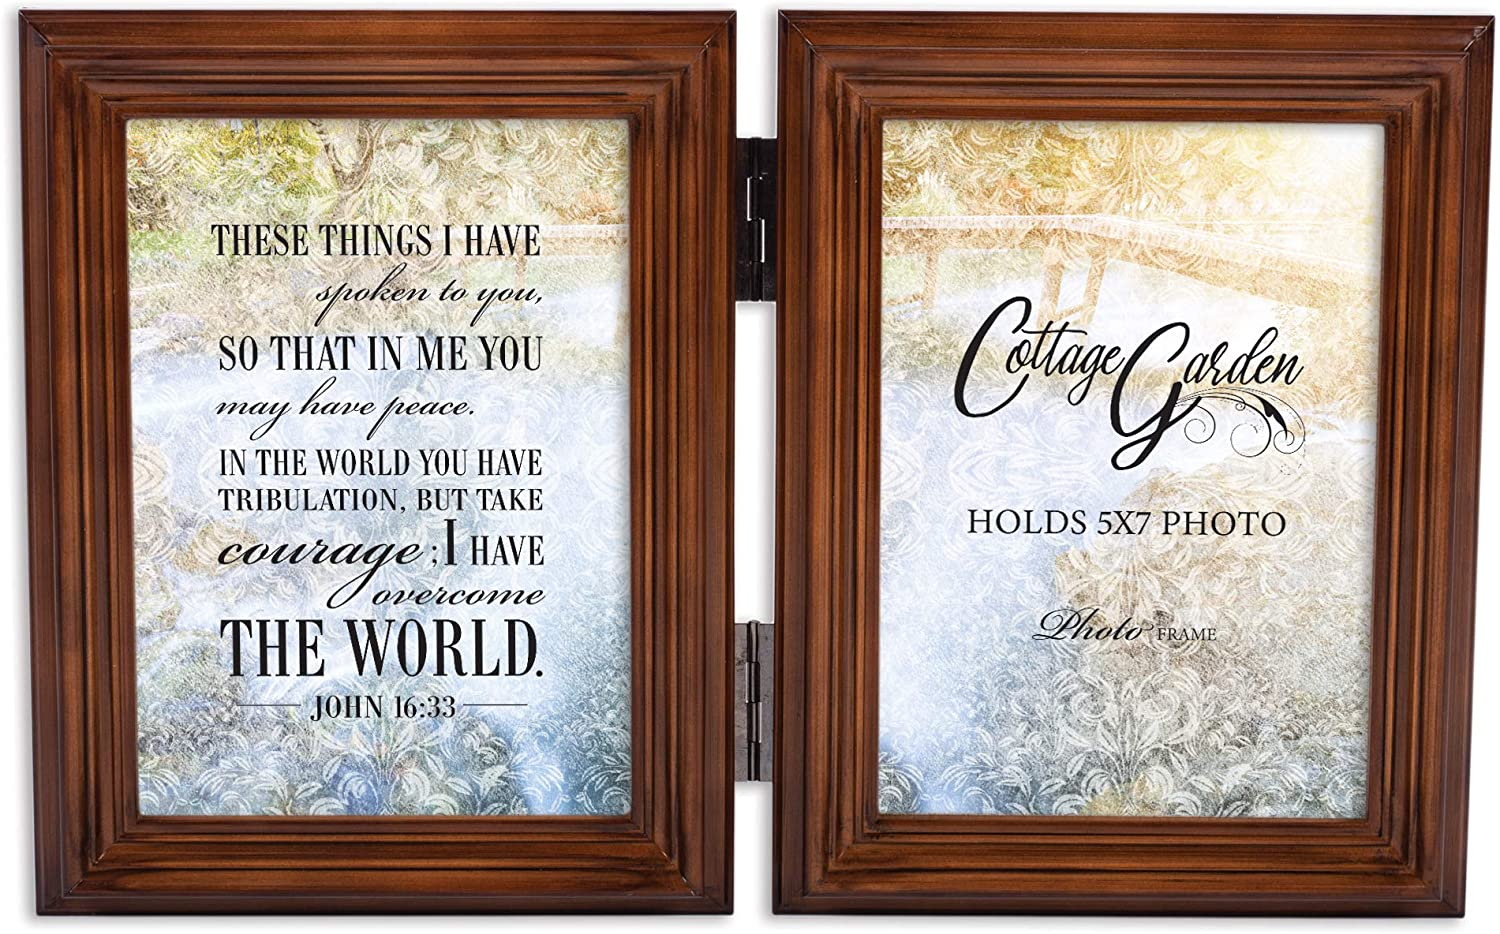 Cottage Garden in Me Have Peace Caramel Brown 5 x 7 Wood Hinged Double Tabletop Photo Frame